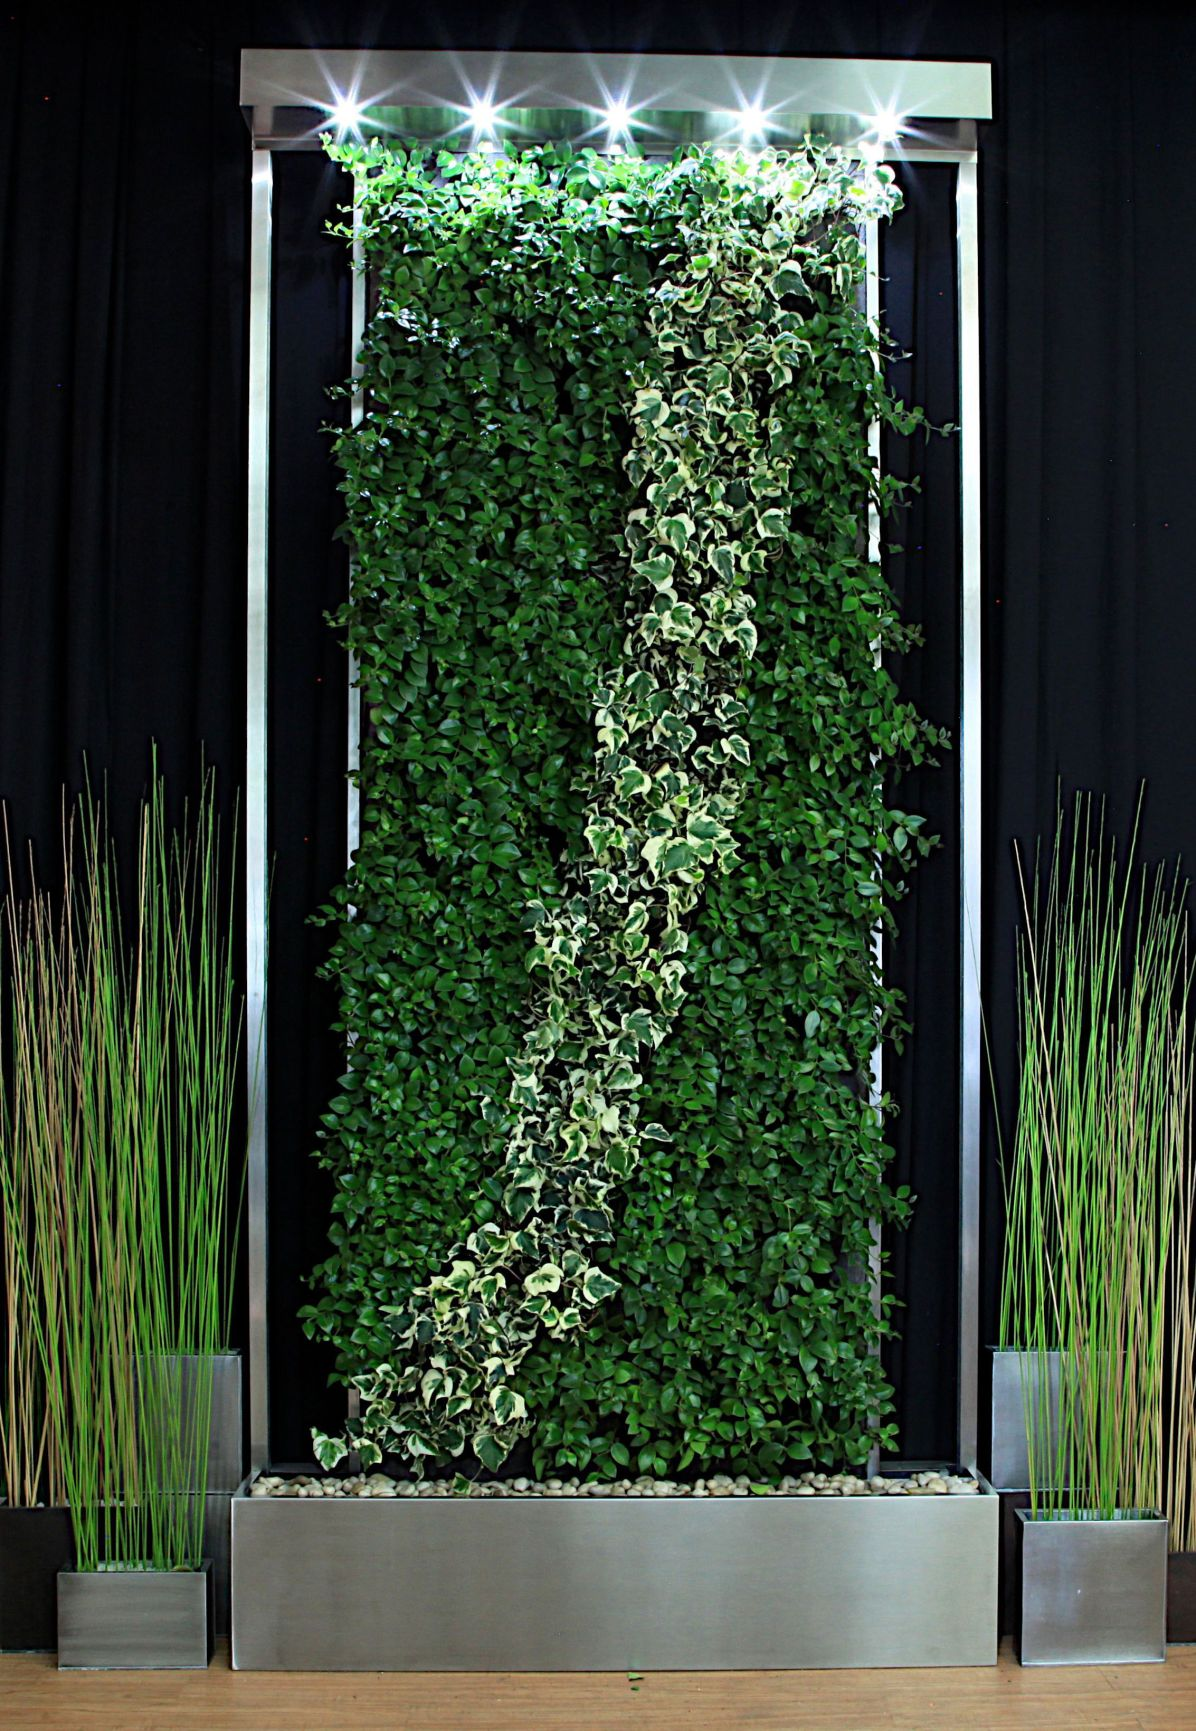 Living walls offer touch of nature